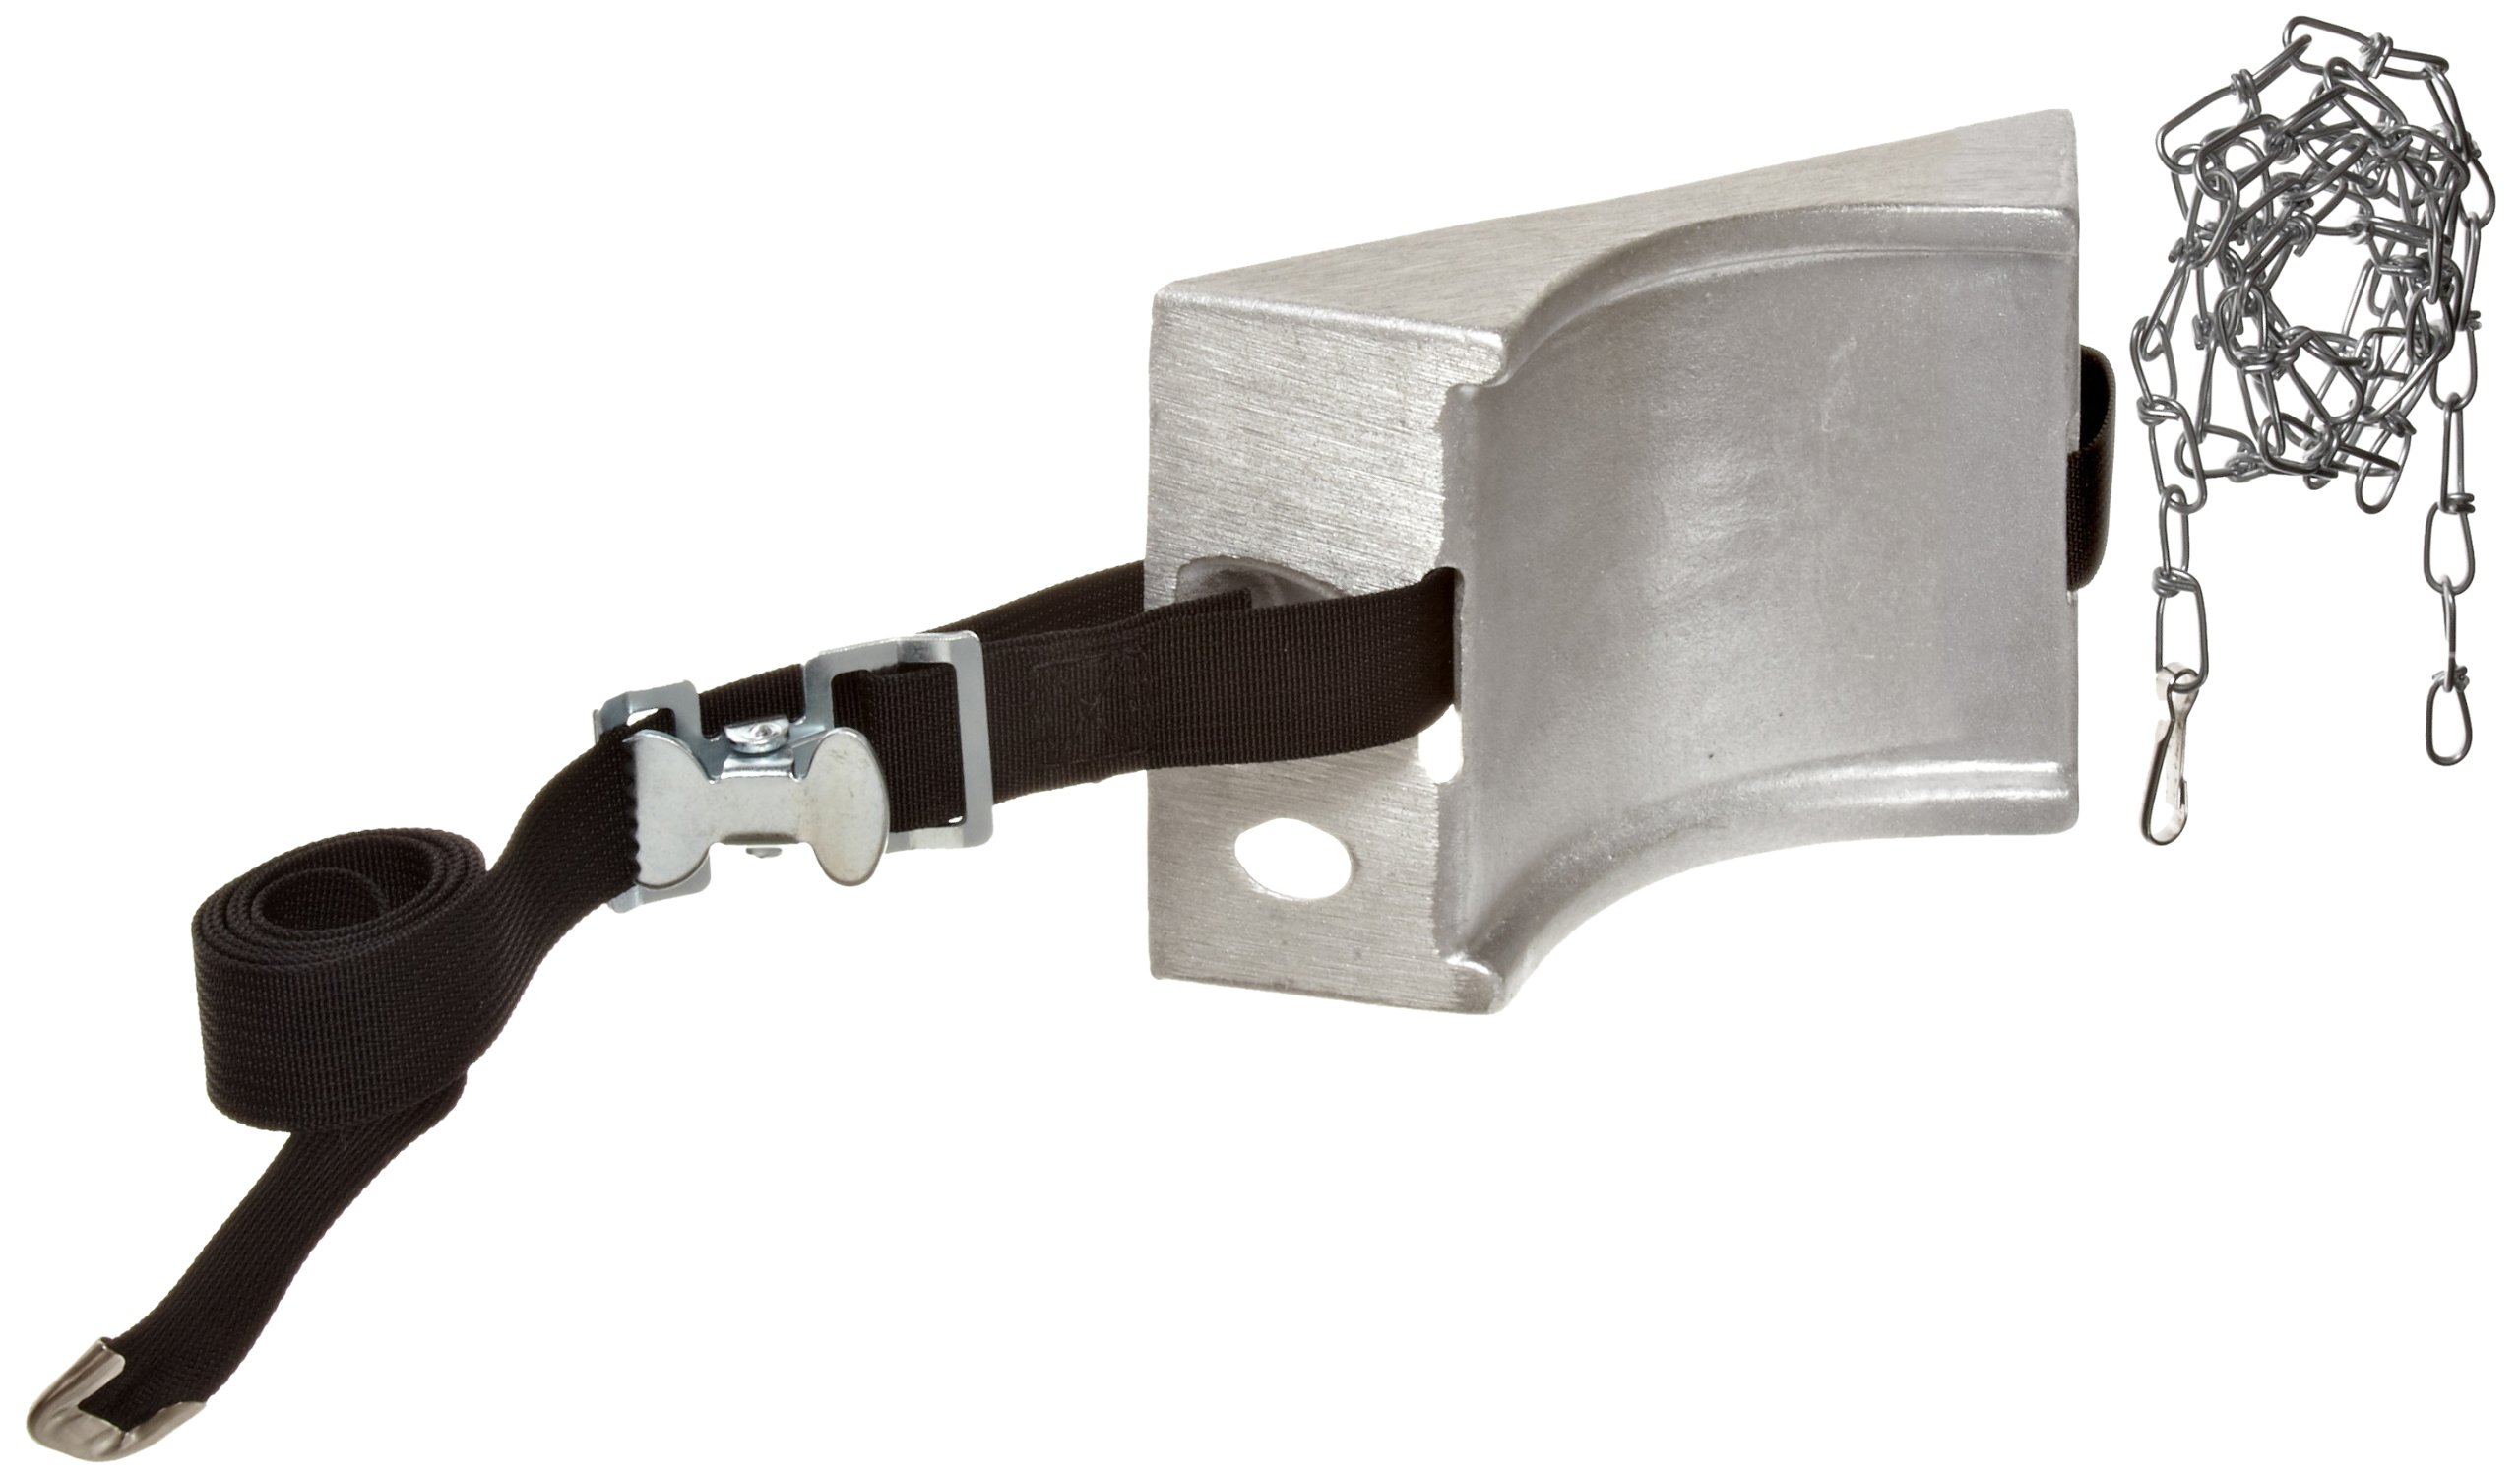 Talboys 717 Aluminum Cylinder Wall Bracket with Strap and Chain, 1.875'' Length x 8.125'' Width x 4.625'' Height